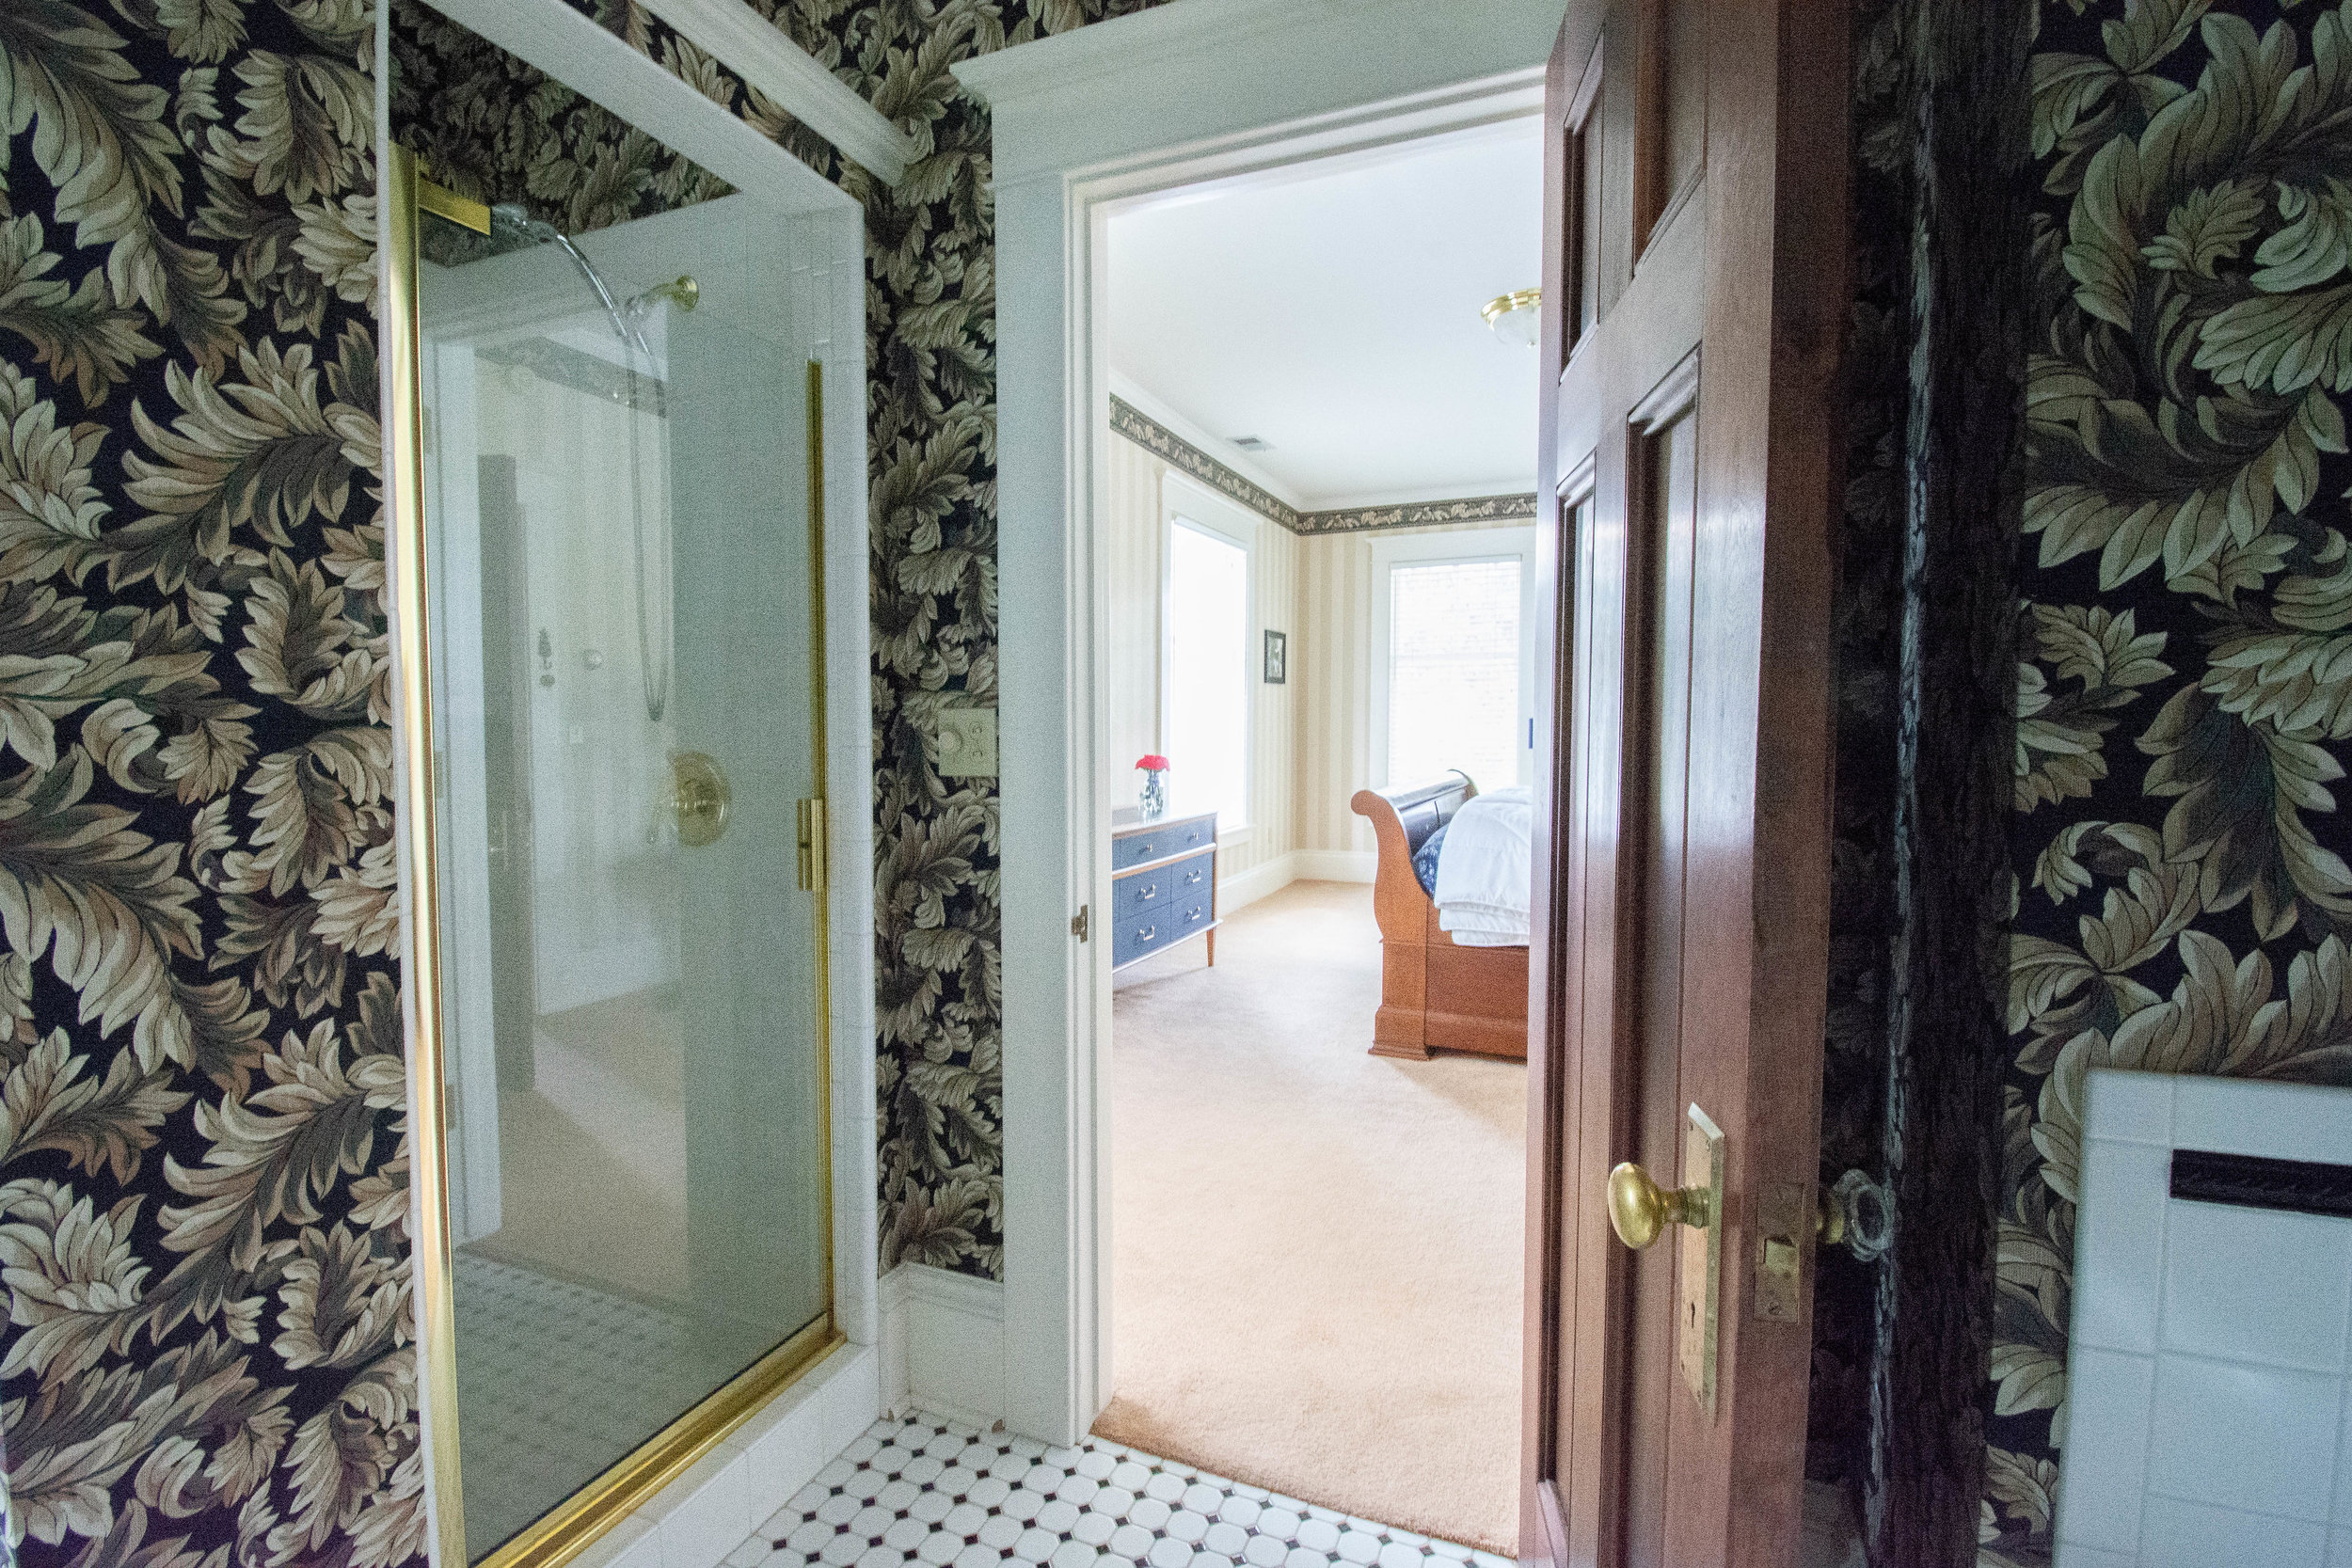 "<img alt= ""Bathroom view with shower and view into Blue Ram room"" />"